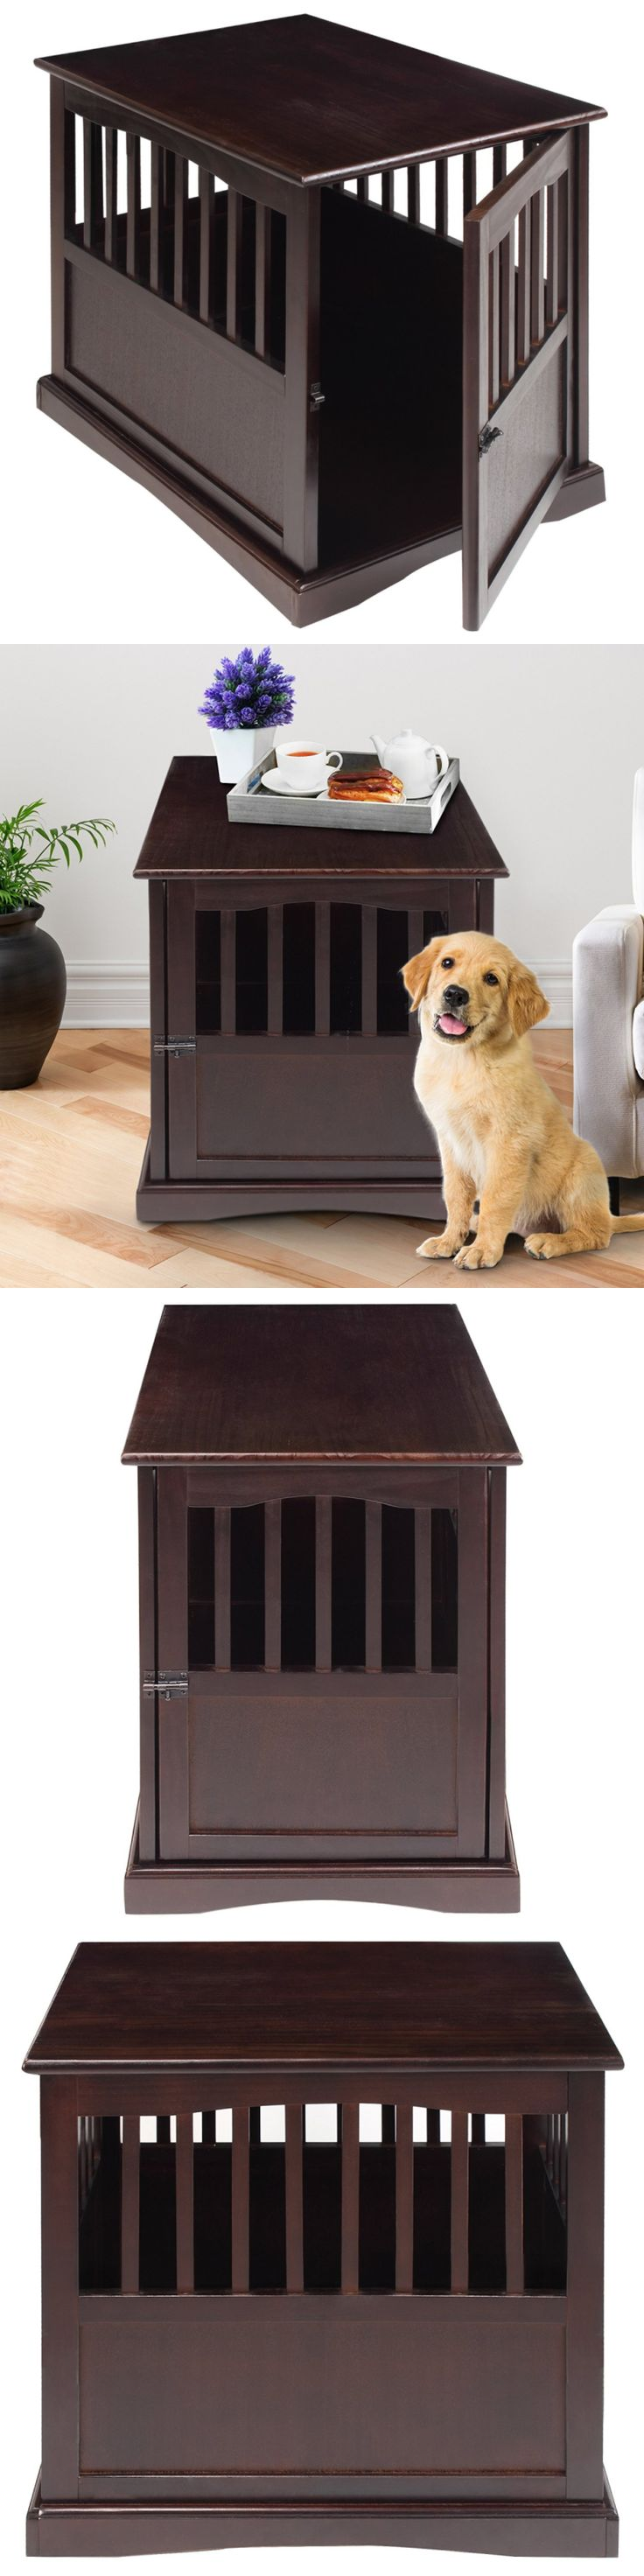 Cages and Crates 121851: Casual Home Pet Crate End Table, 24-Inch -> BUY IT NOW ONLY: $95.53 on eBay!